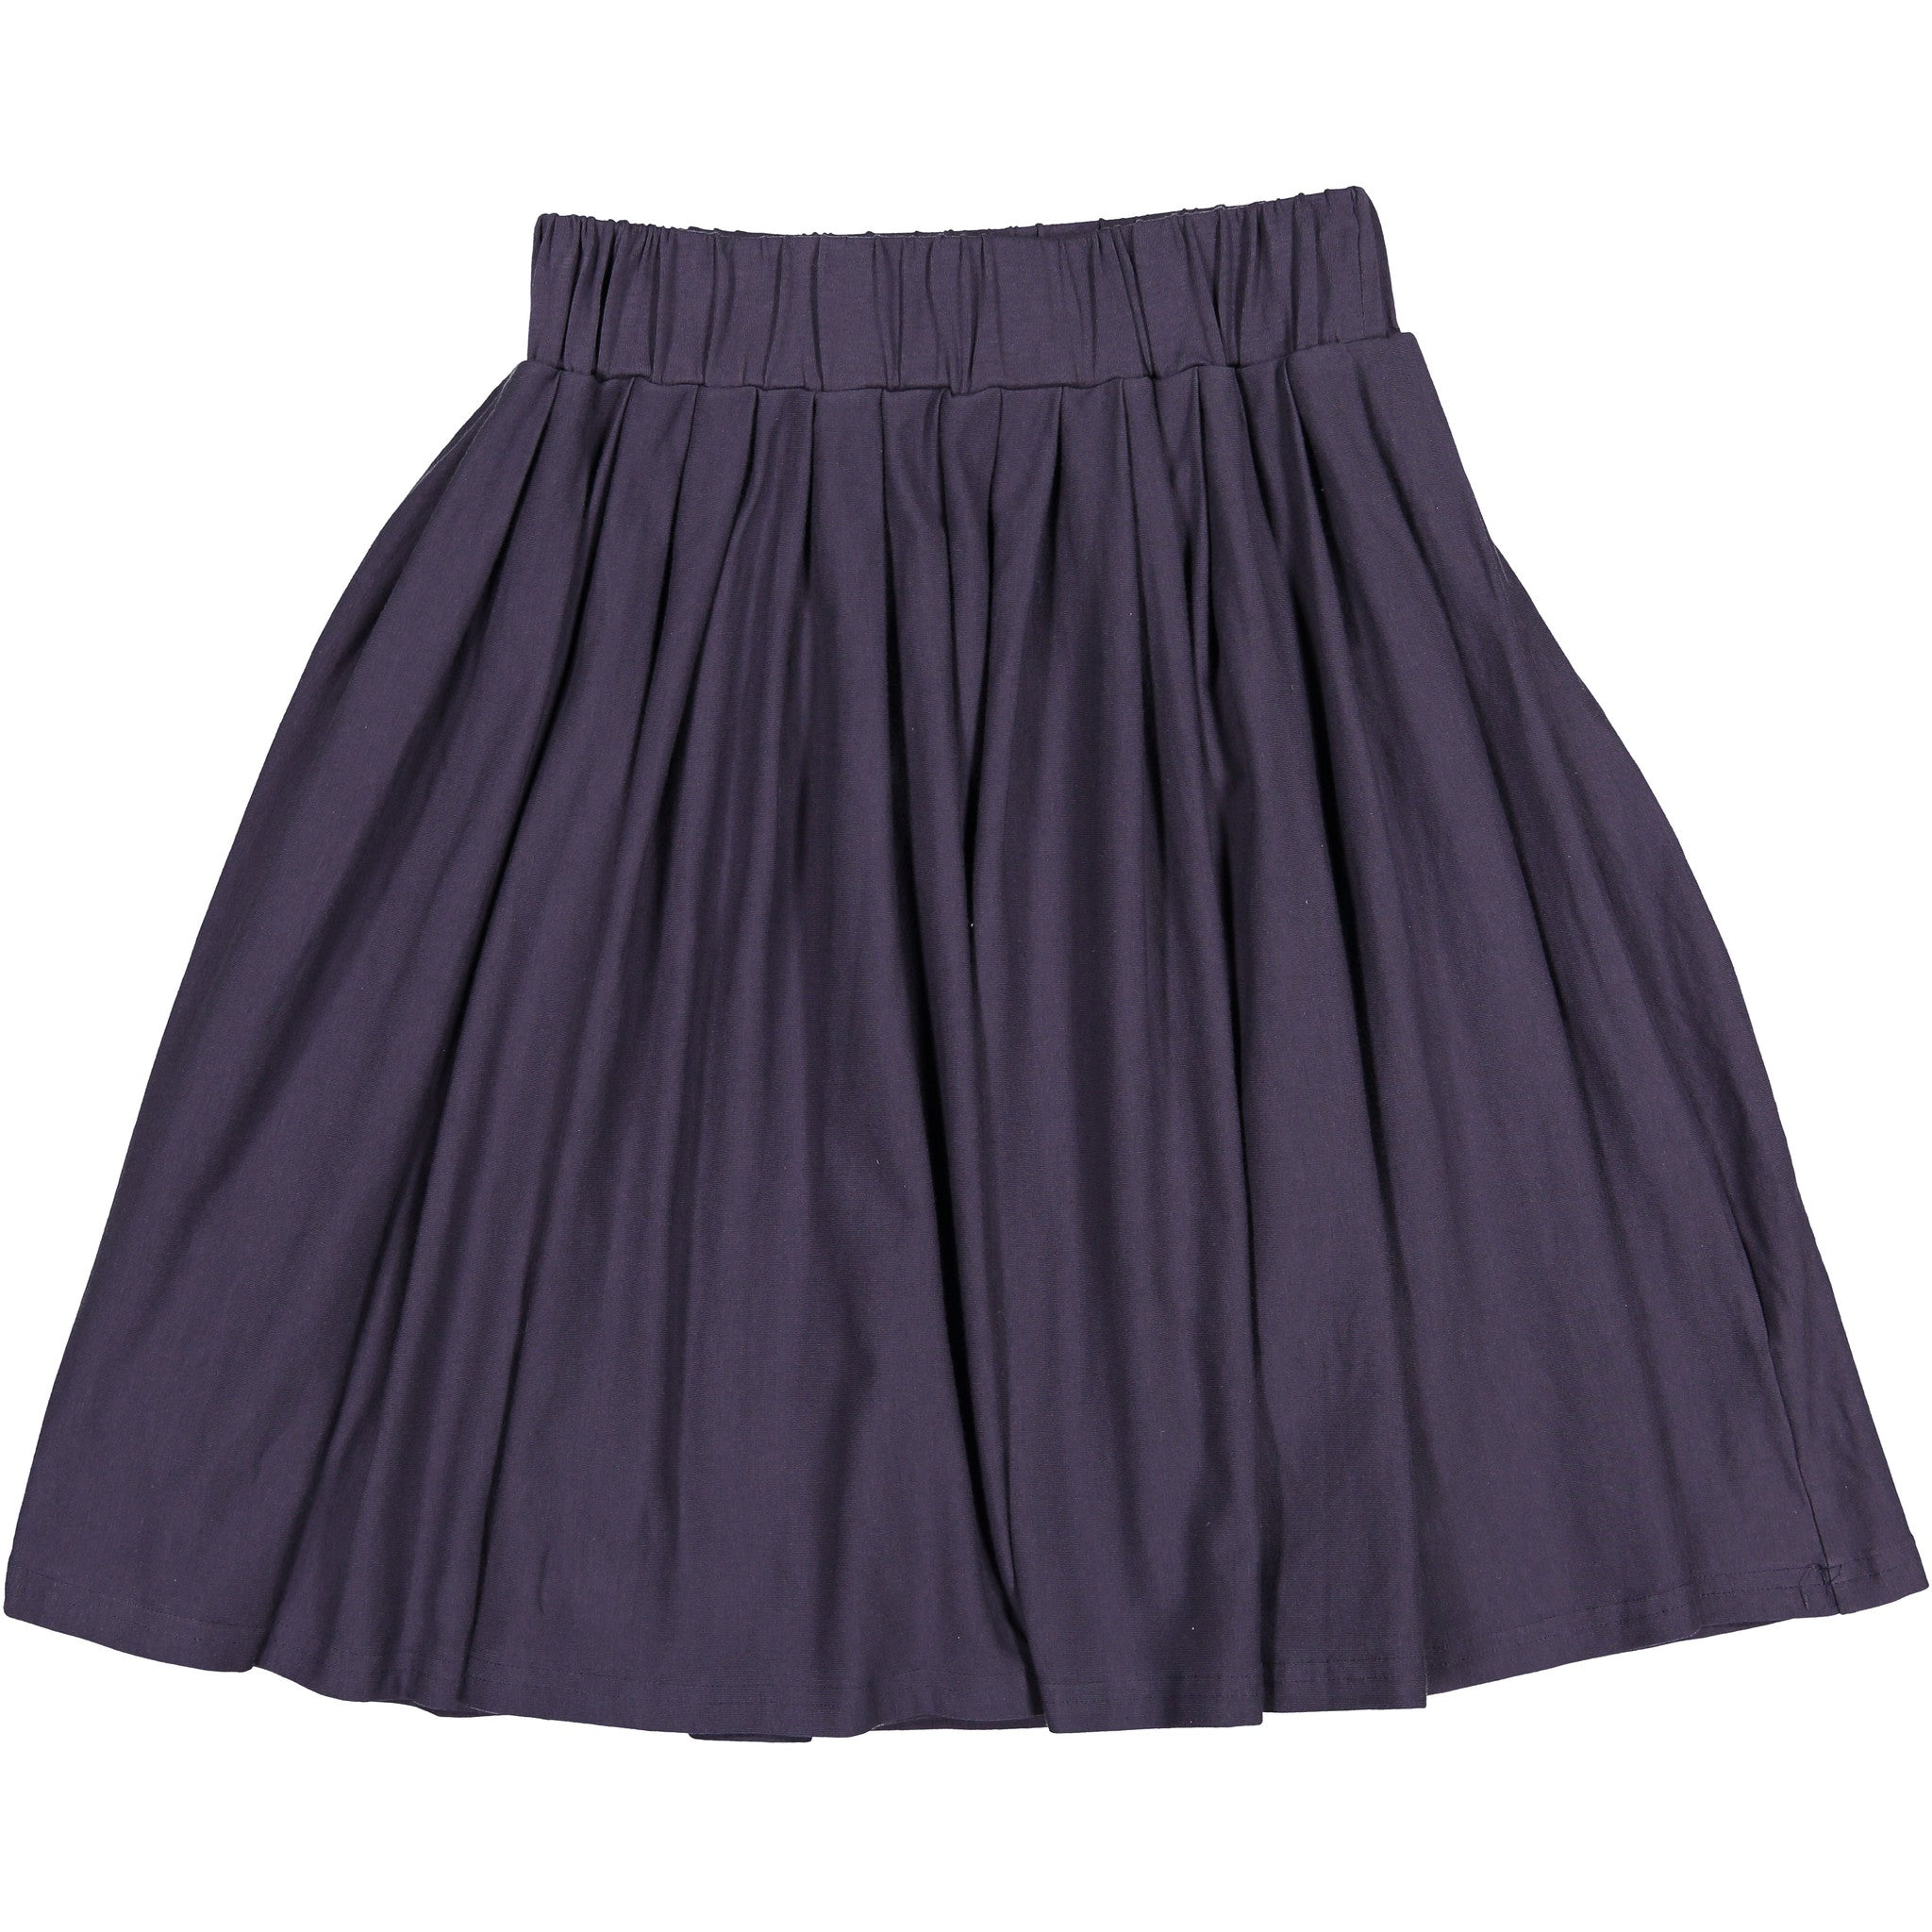 Ava & Lu Gray Tee Skirt - Ladida